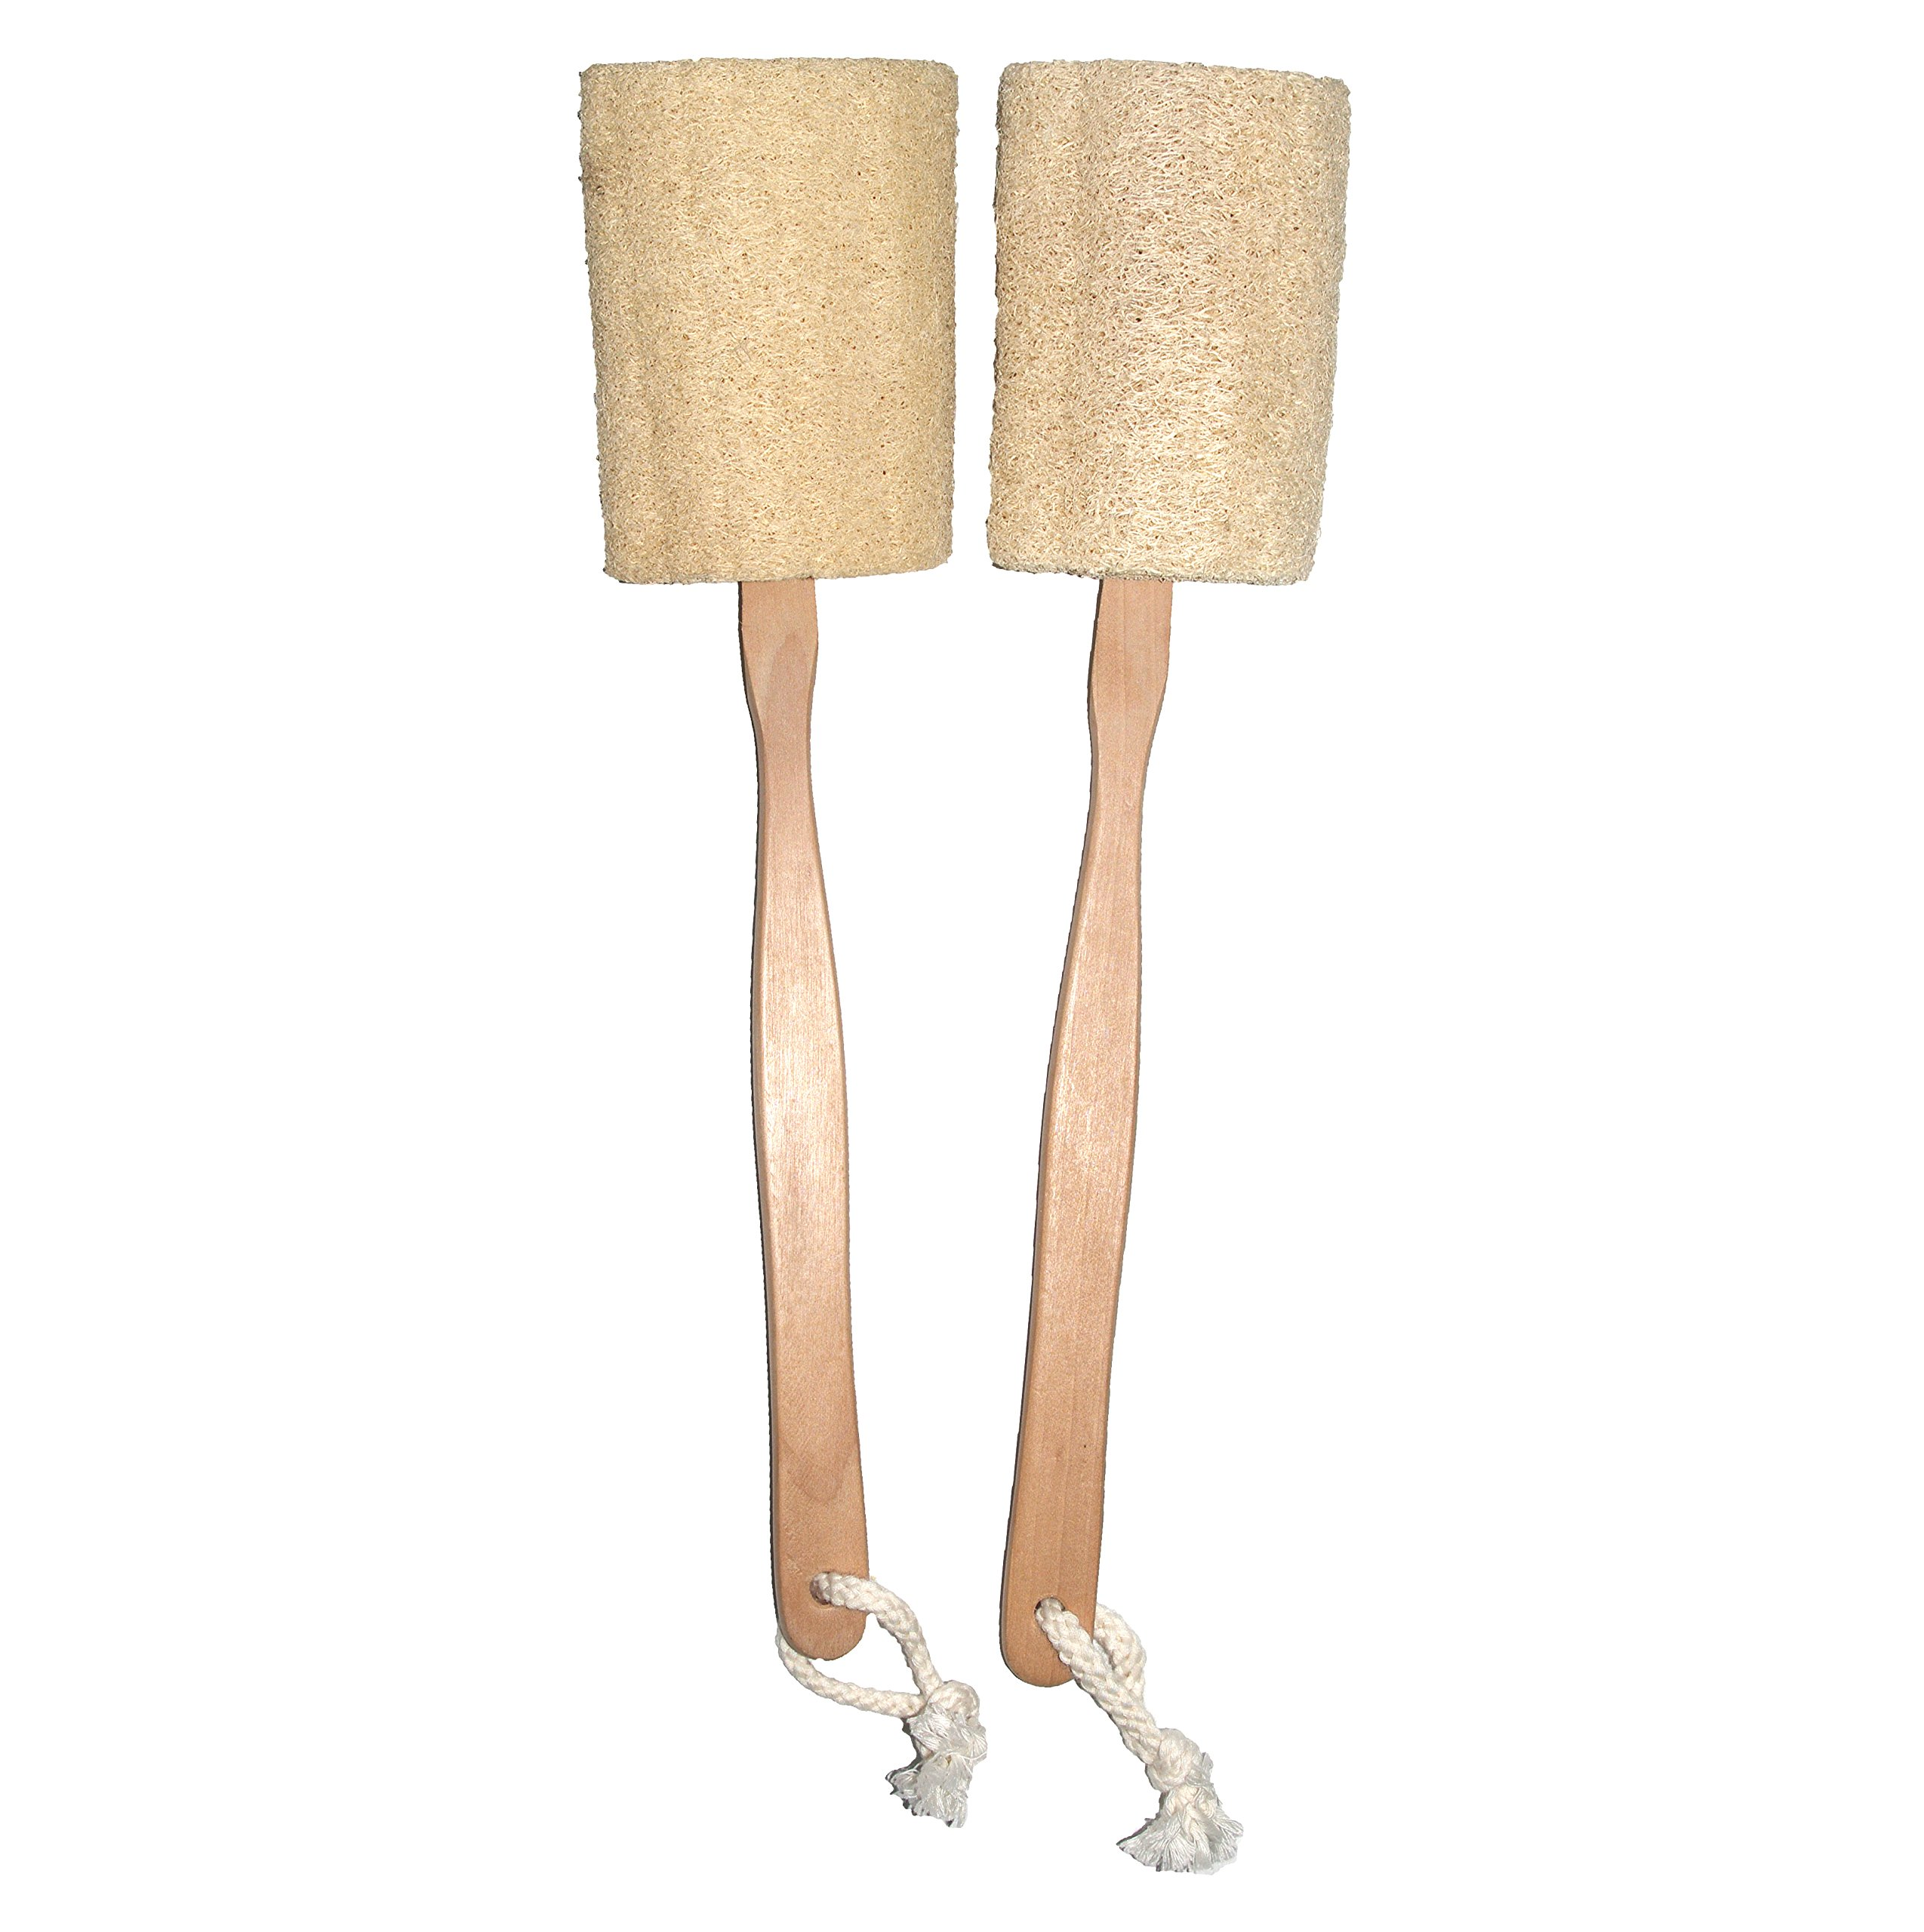 Natural Exfoliating Loofah Luffa Loofa Back Sponge Scrubber Brush with Long Wooden Handle Stick Holder Body Shower Bath Spa Pack of 2